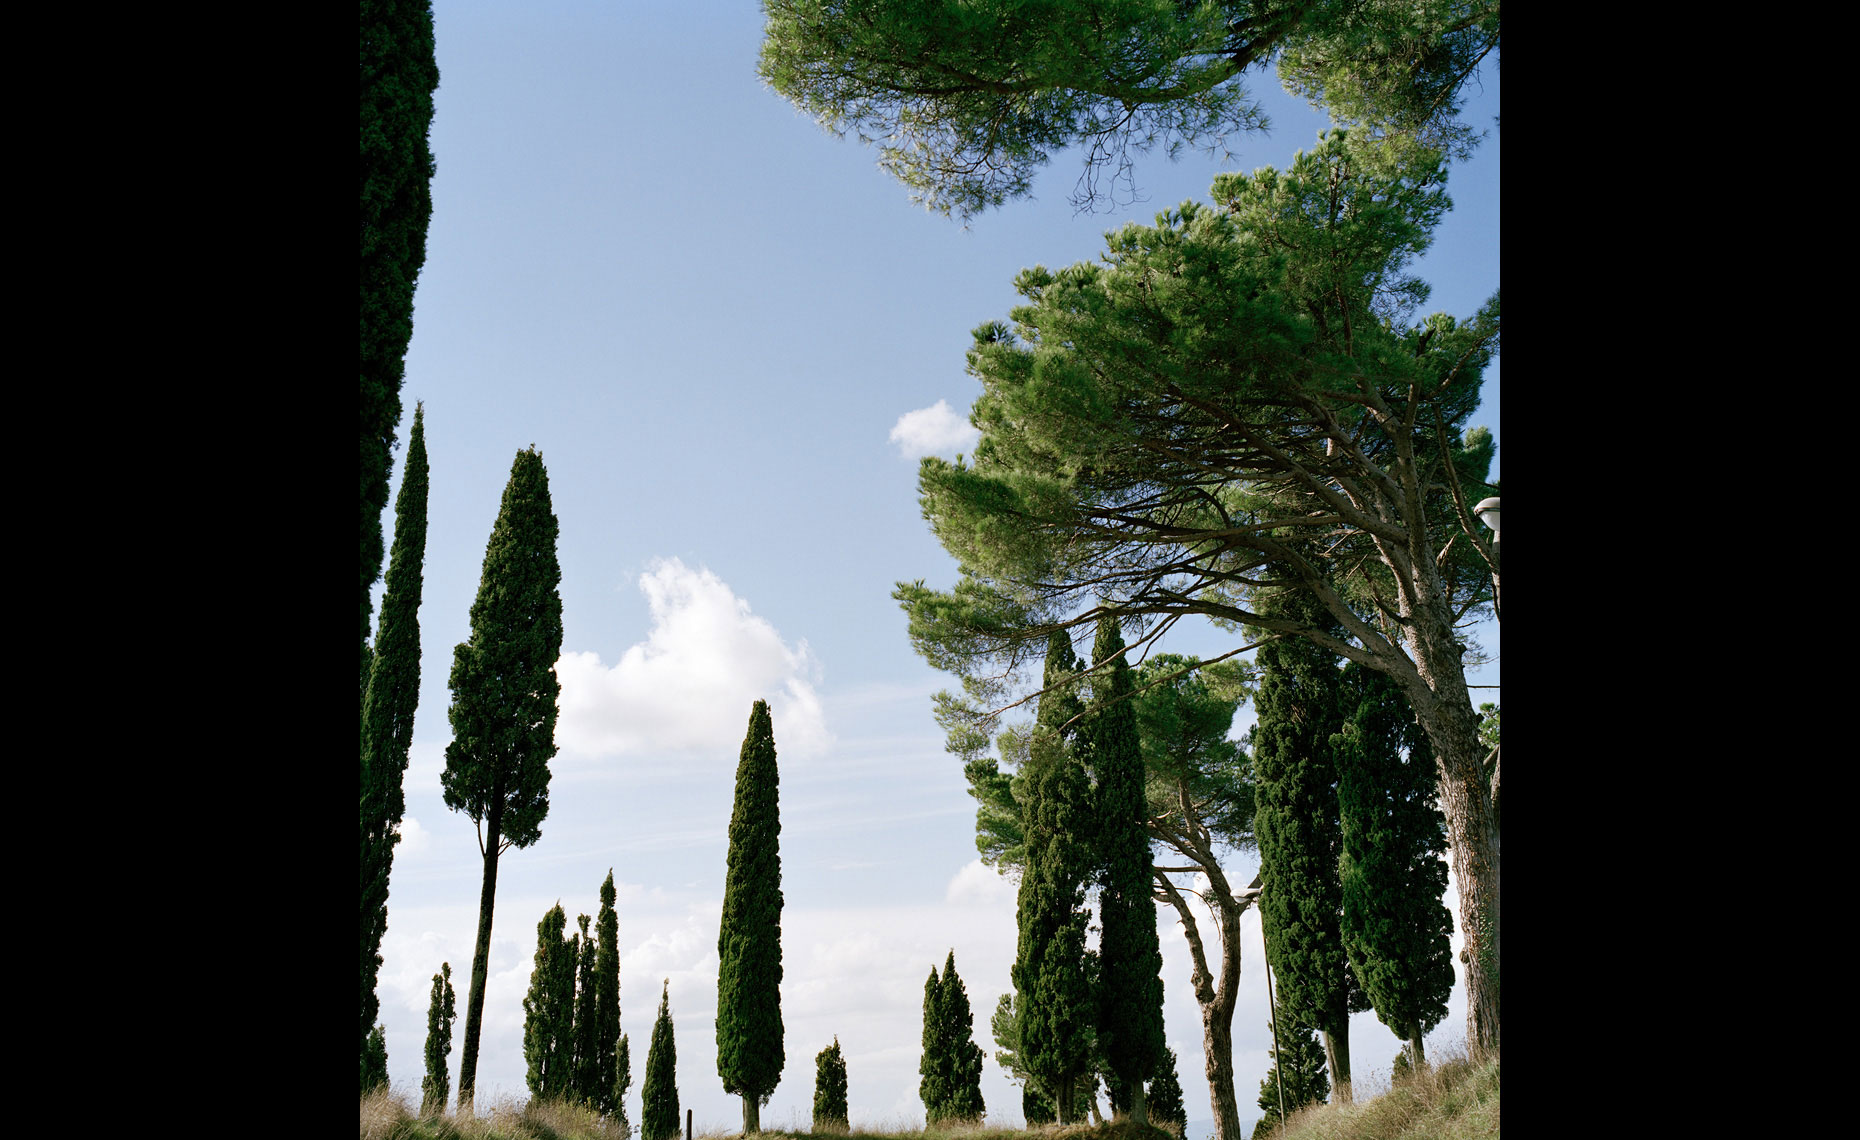 Tuscan Pines, Italy